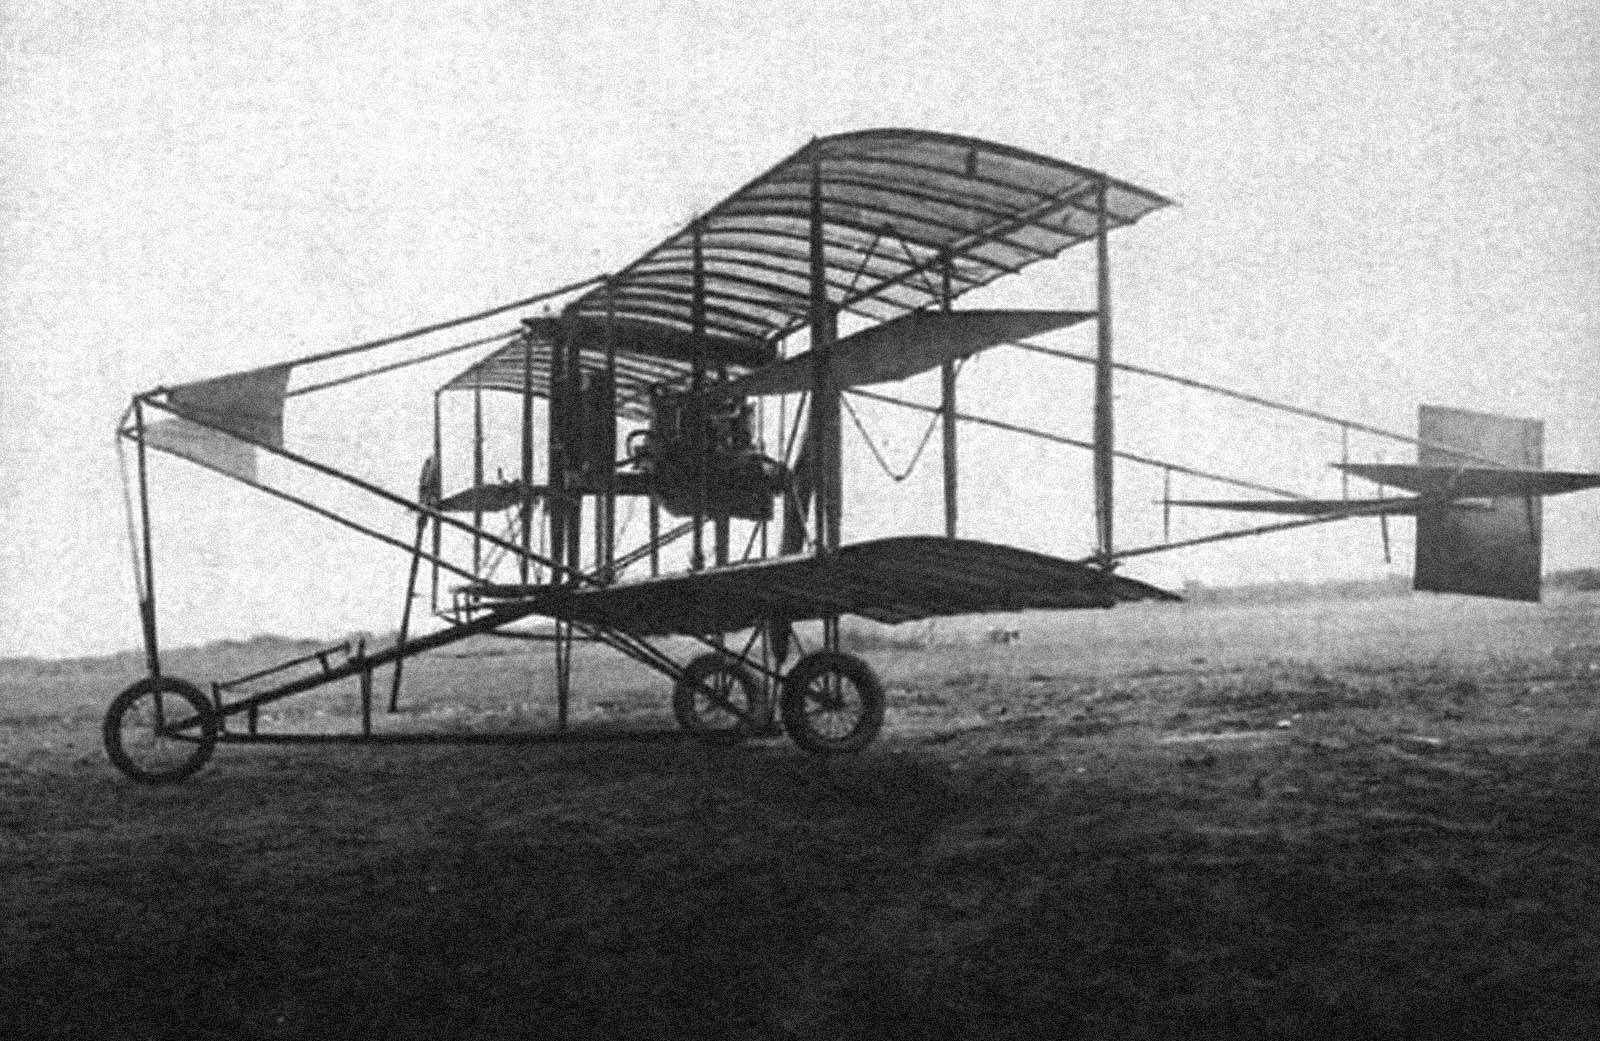 First Flight Kitty Hawk 1903 regarding the evolution of airplanes : march 2014